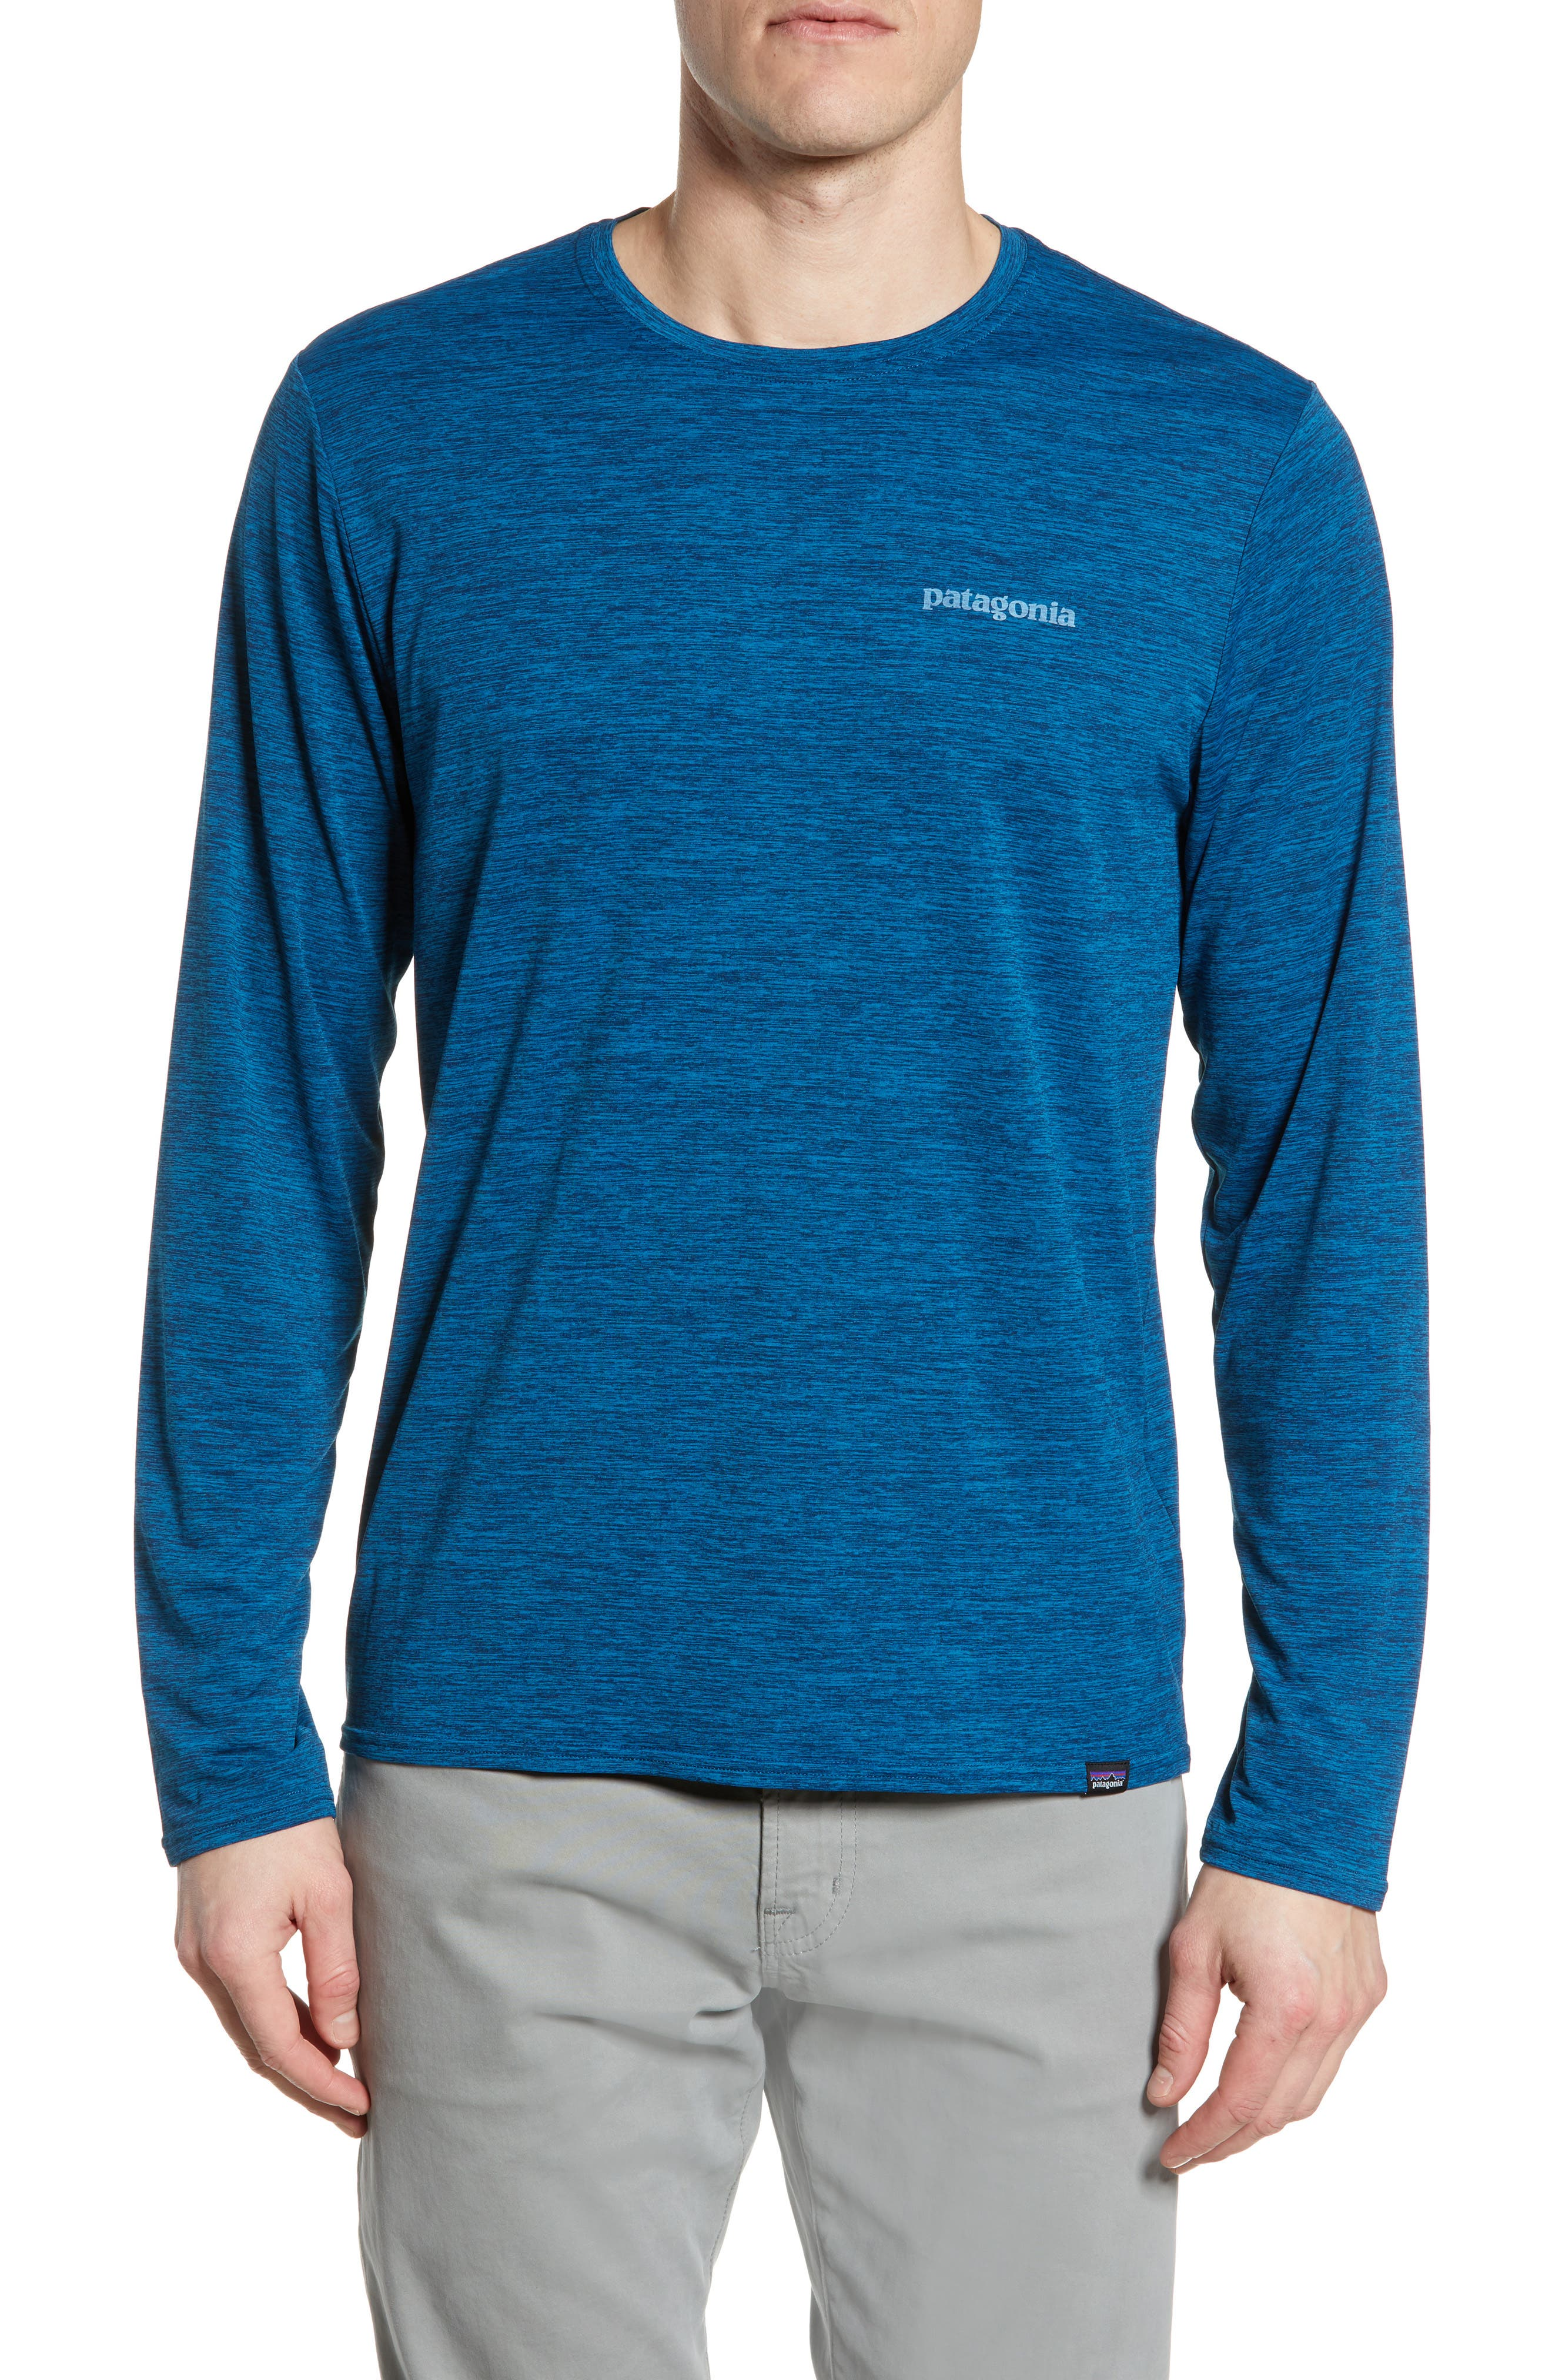 Patagonia Capilene Cool Daily Long Sleeve T-Shirt, Blue